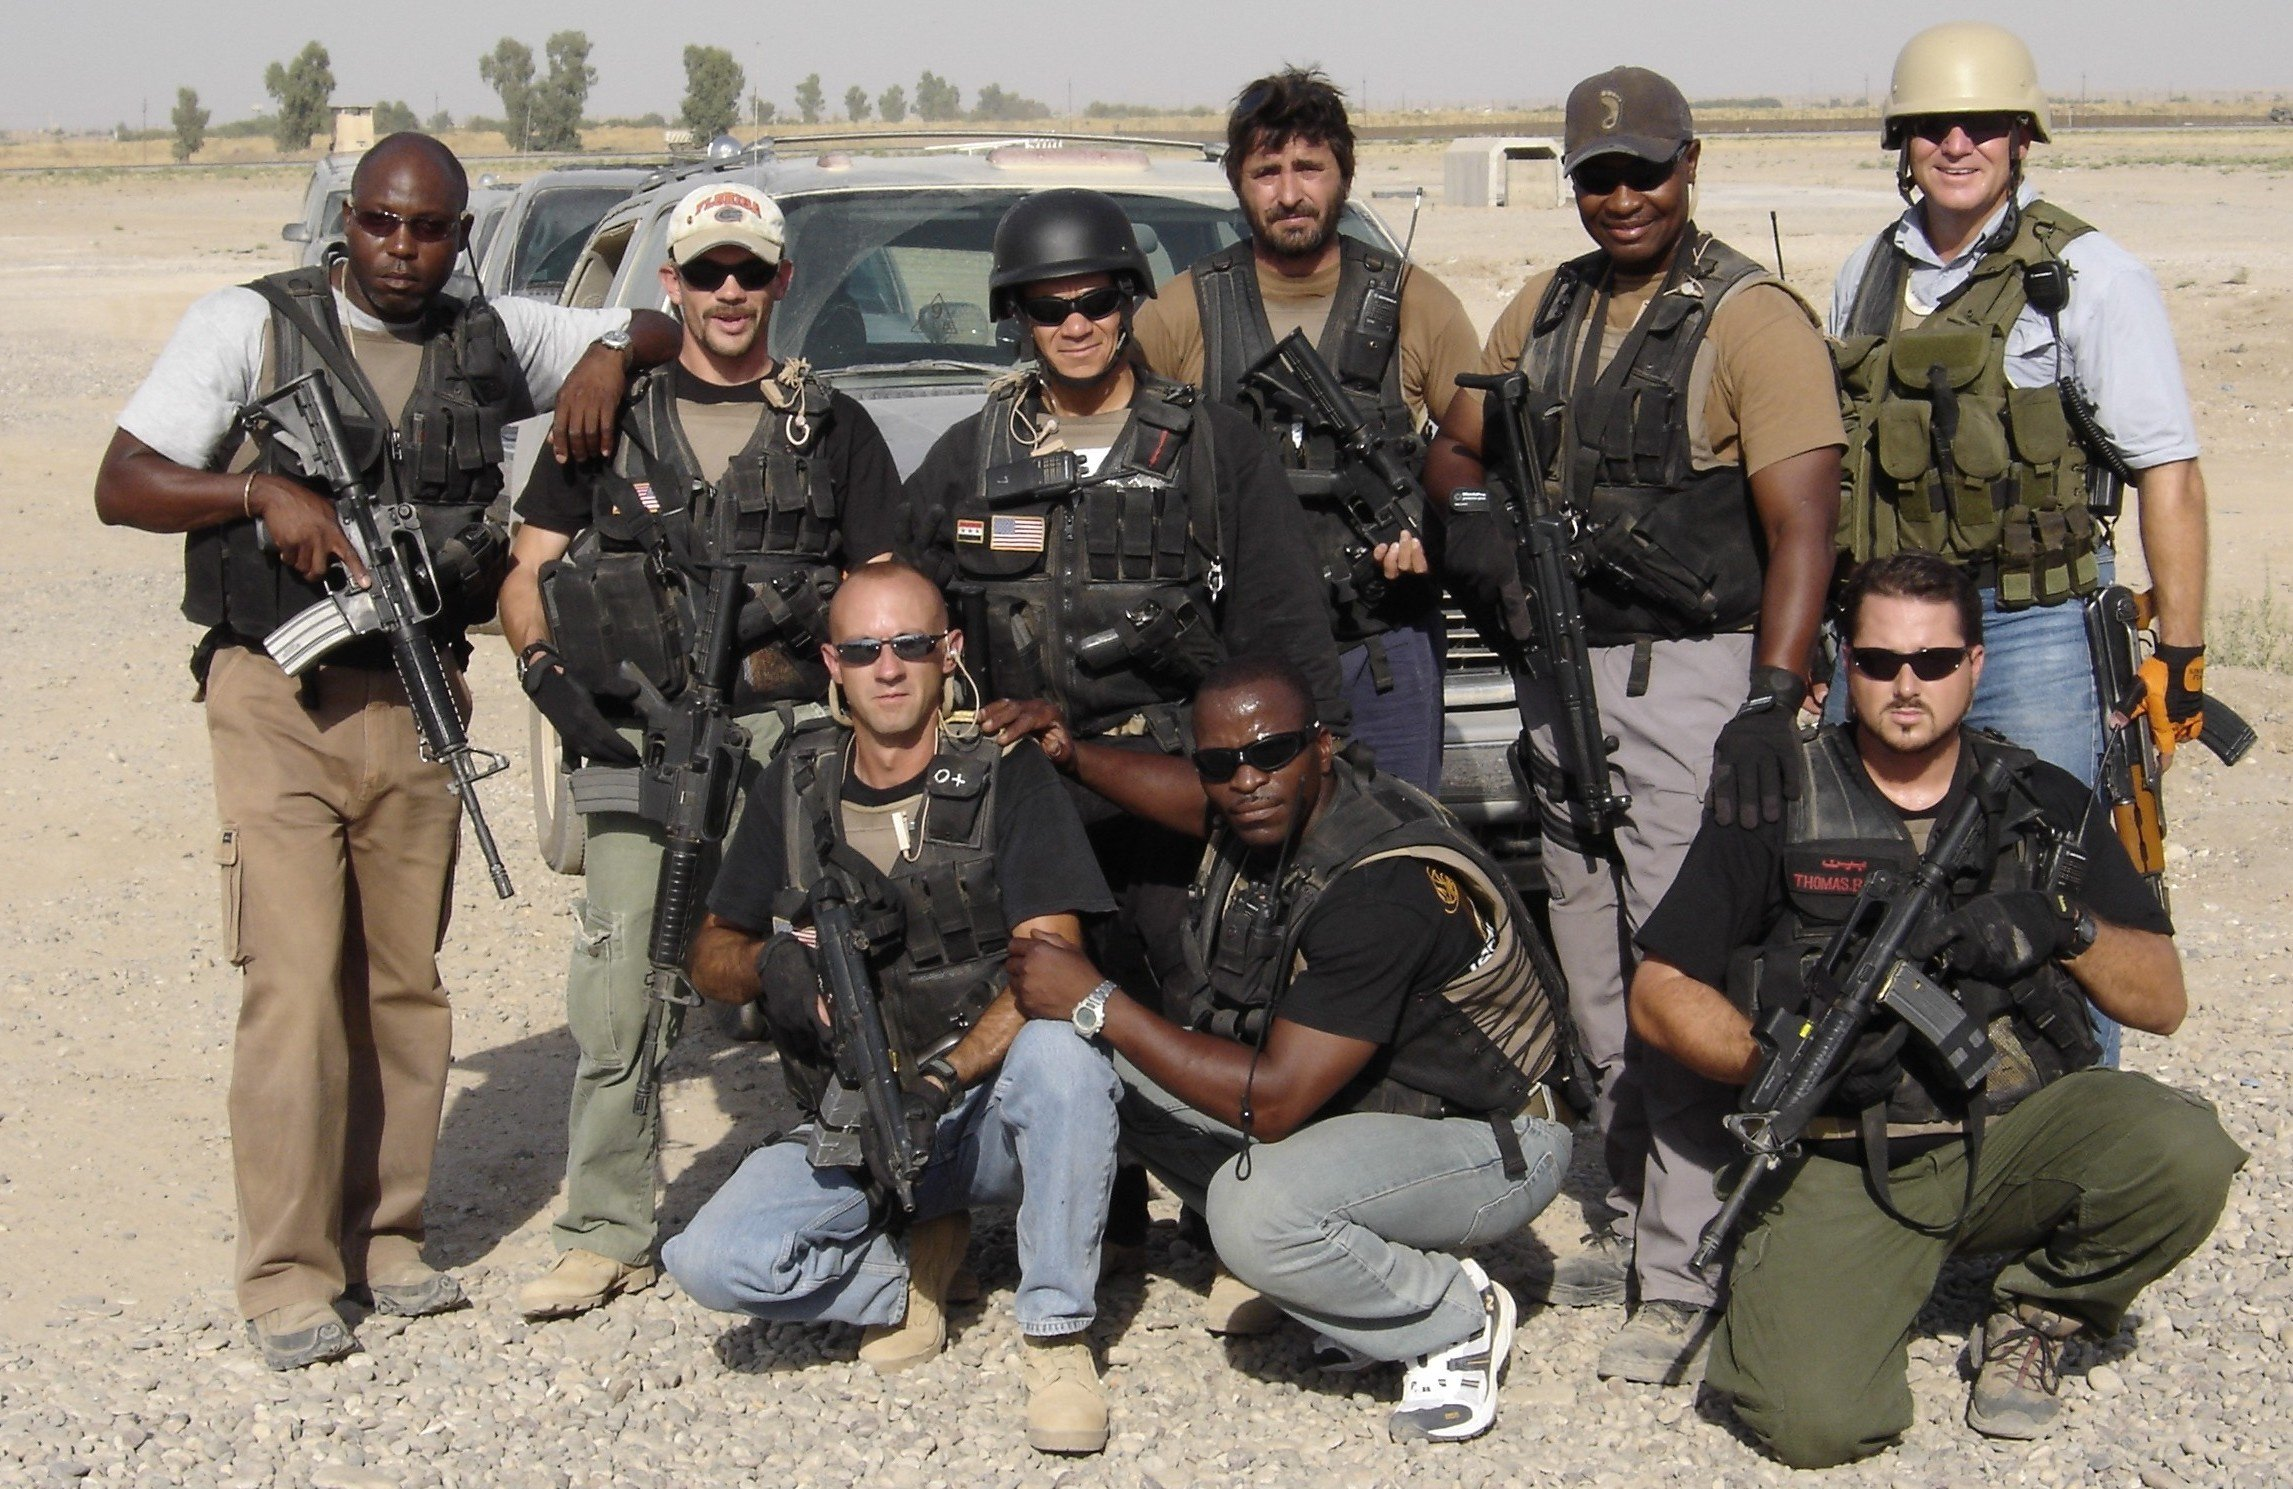 """private military companies mere war profiteers Outsourcing the war to private military contractors such as the dark truth about blackwater as """"mere anomalies,"""" portray private firms outside."""